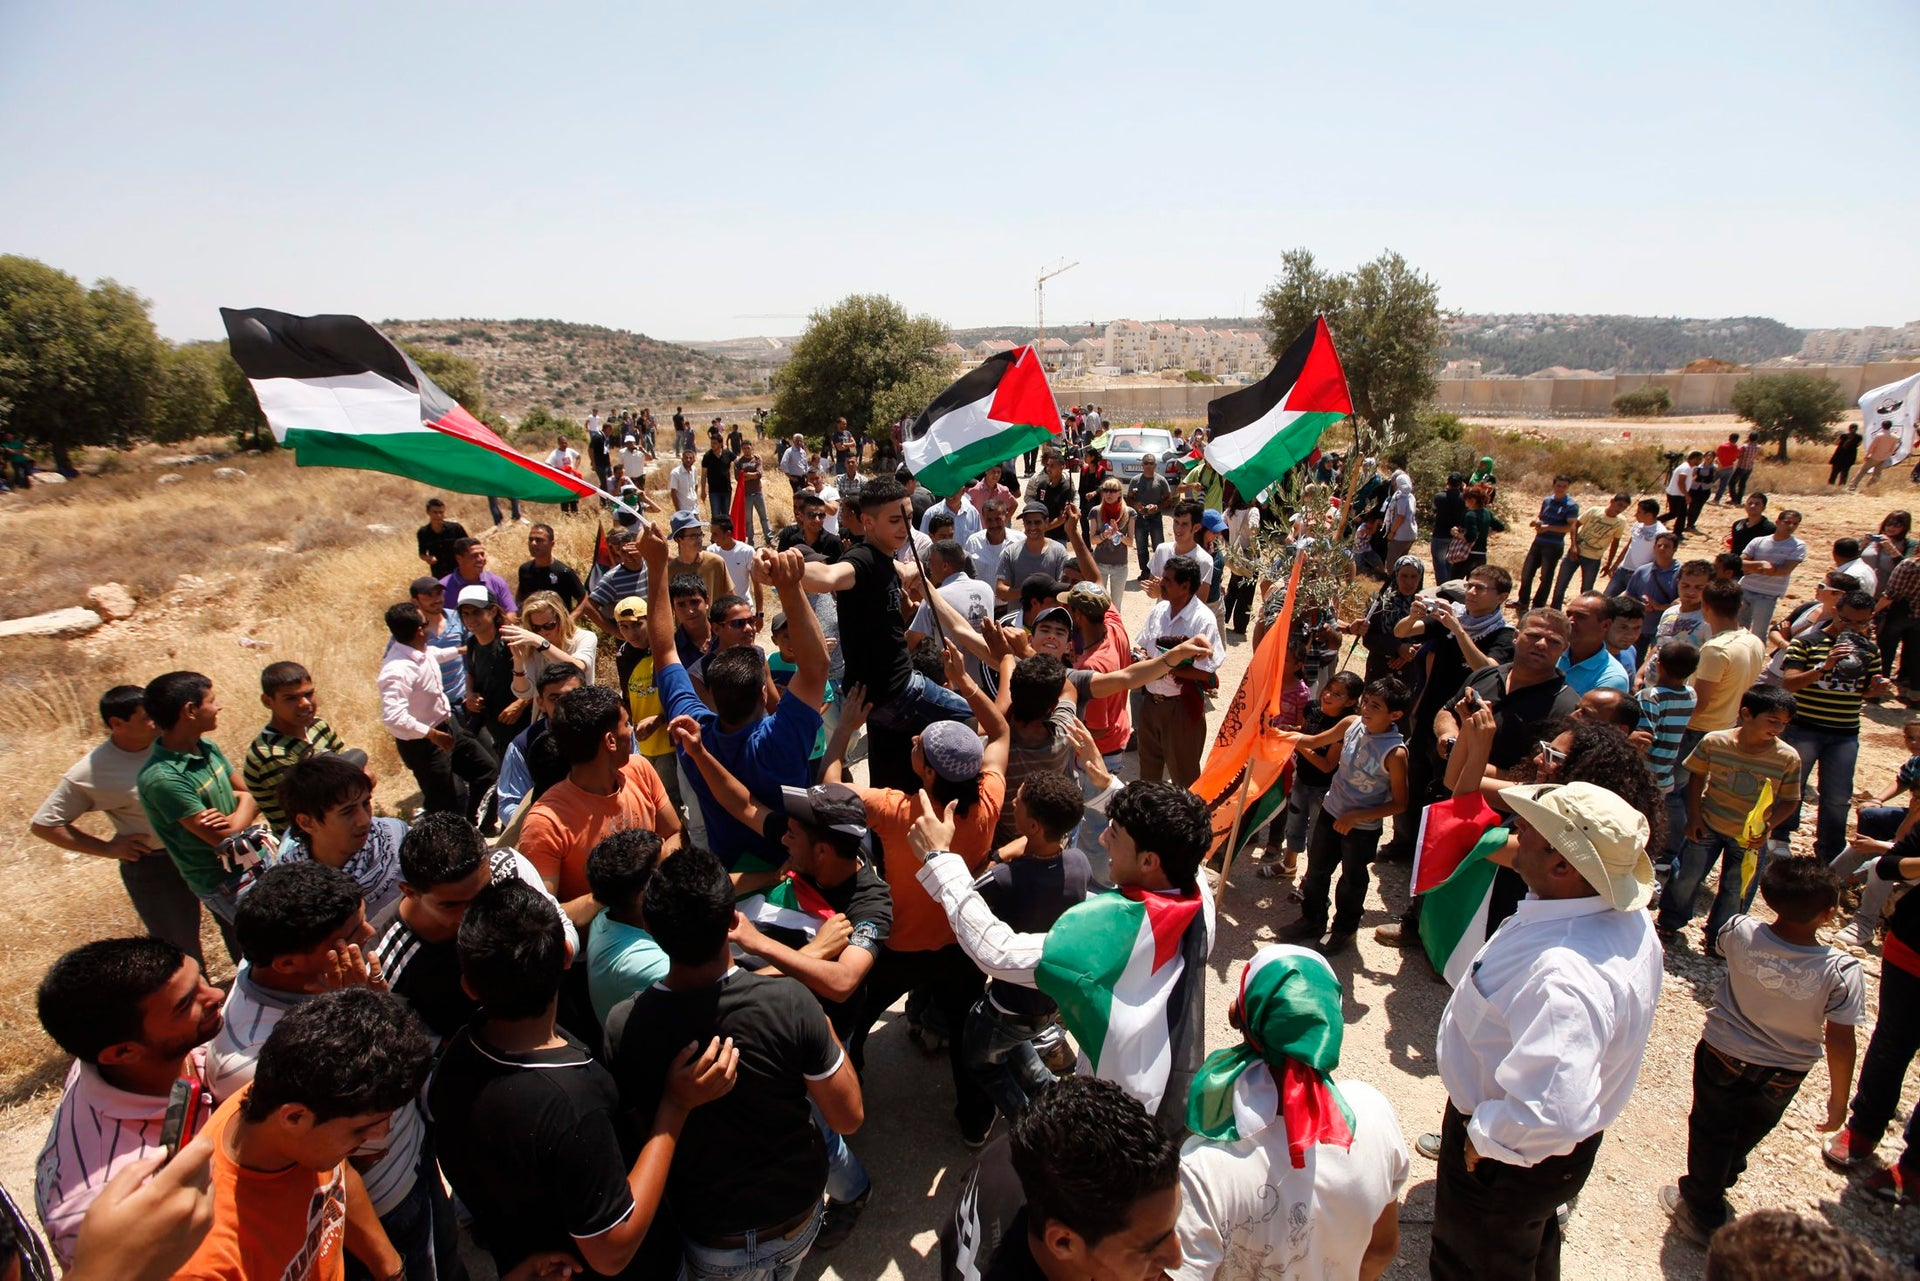 Palestinians celebrate the rerouting of the separation barrier between Bi'lin and the settlement of Modi'in Ilit, September 26, 2011.